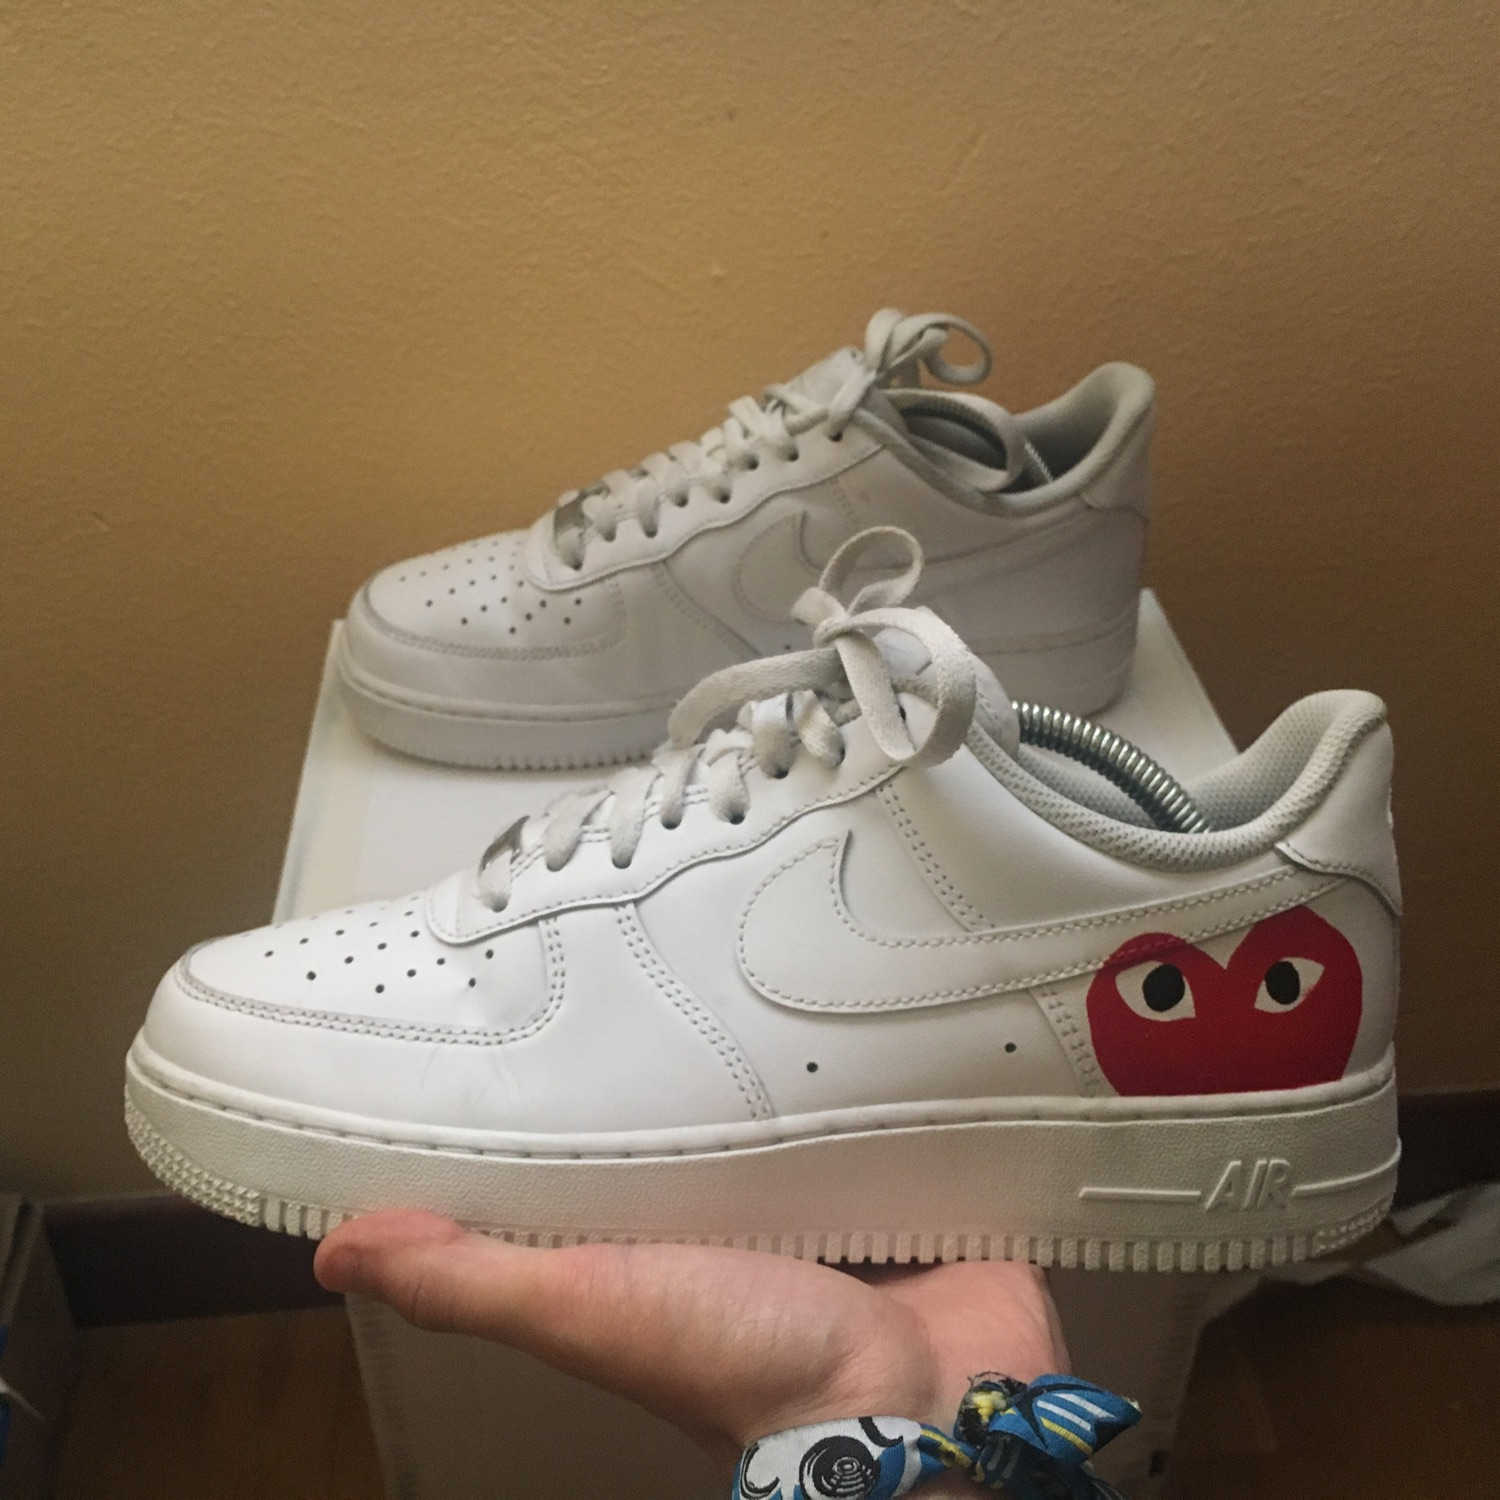 Nike Air Force 1 Commes Des Garcons (Custom)